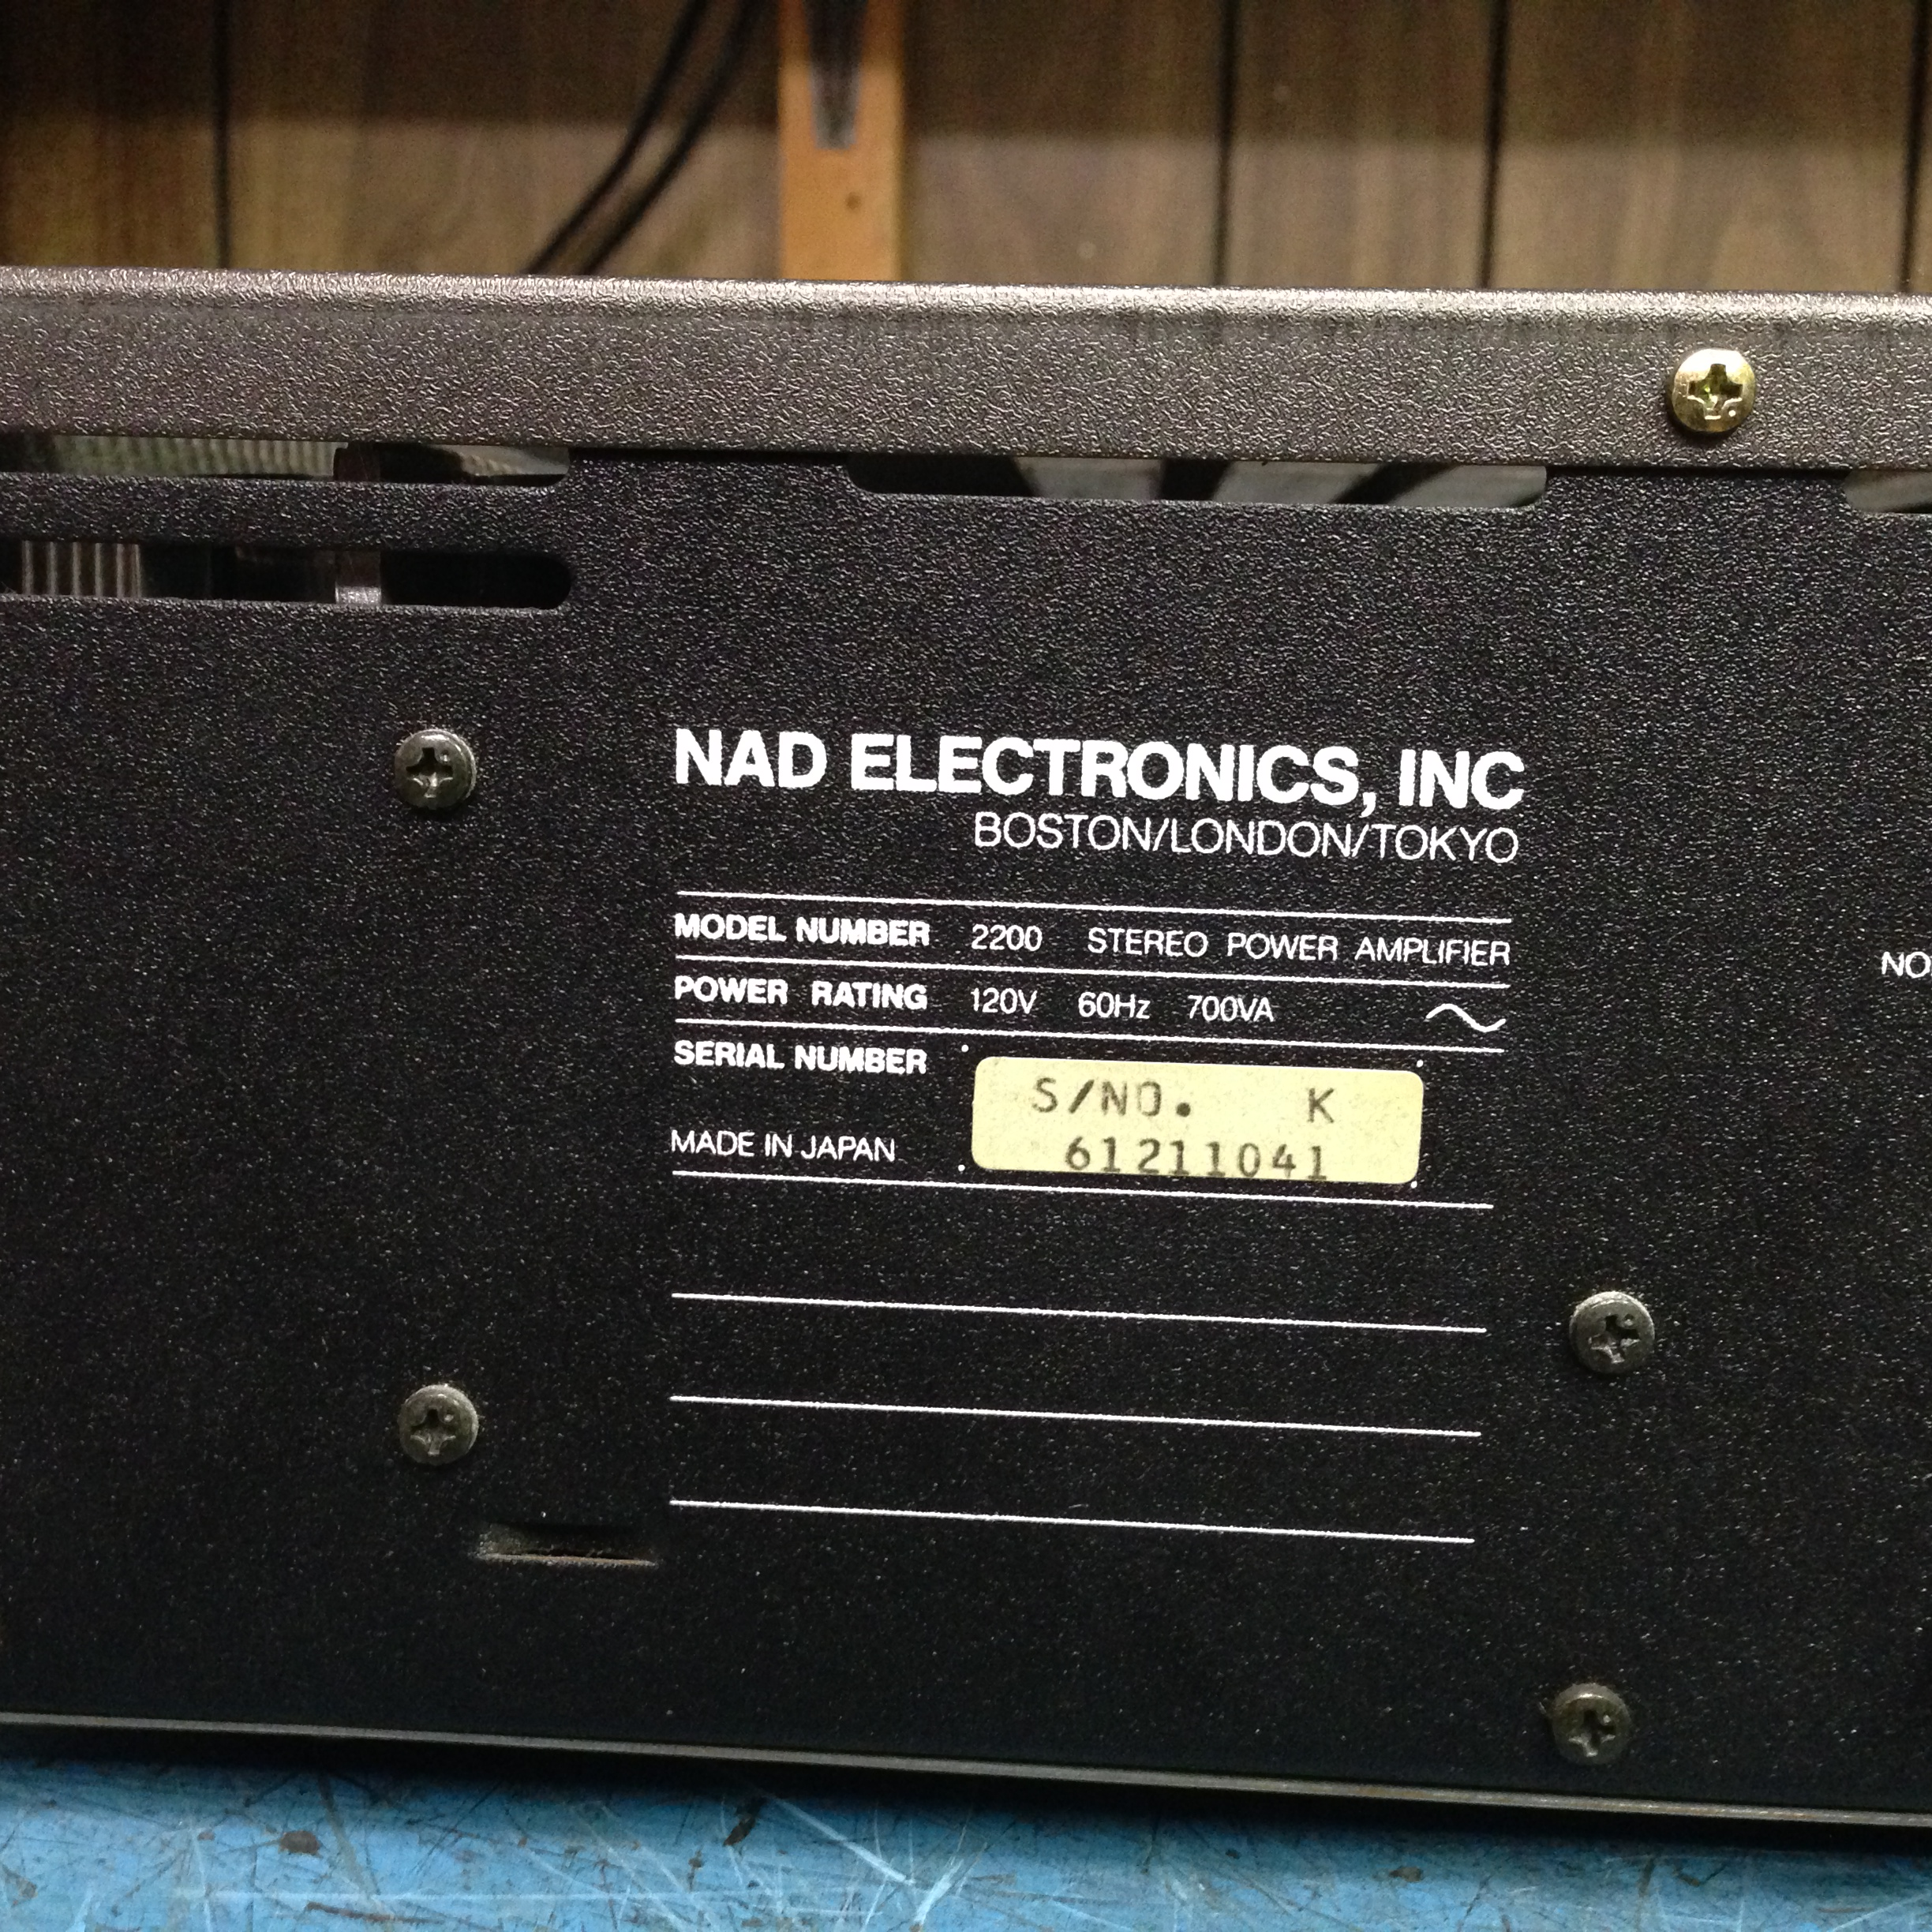 NAD 2200 Stereo Amplifier (must be purchased with NAD 1155 and NAD 4155)